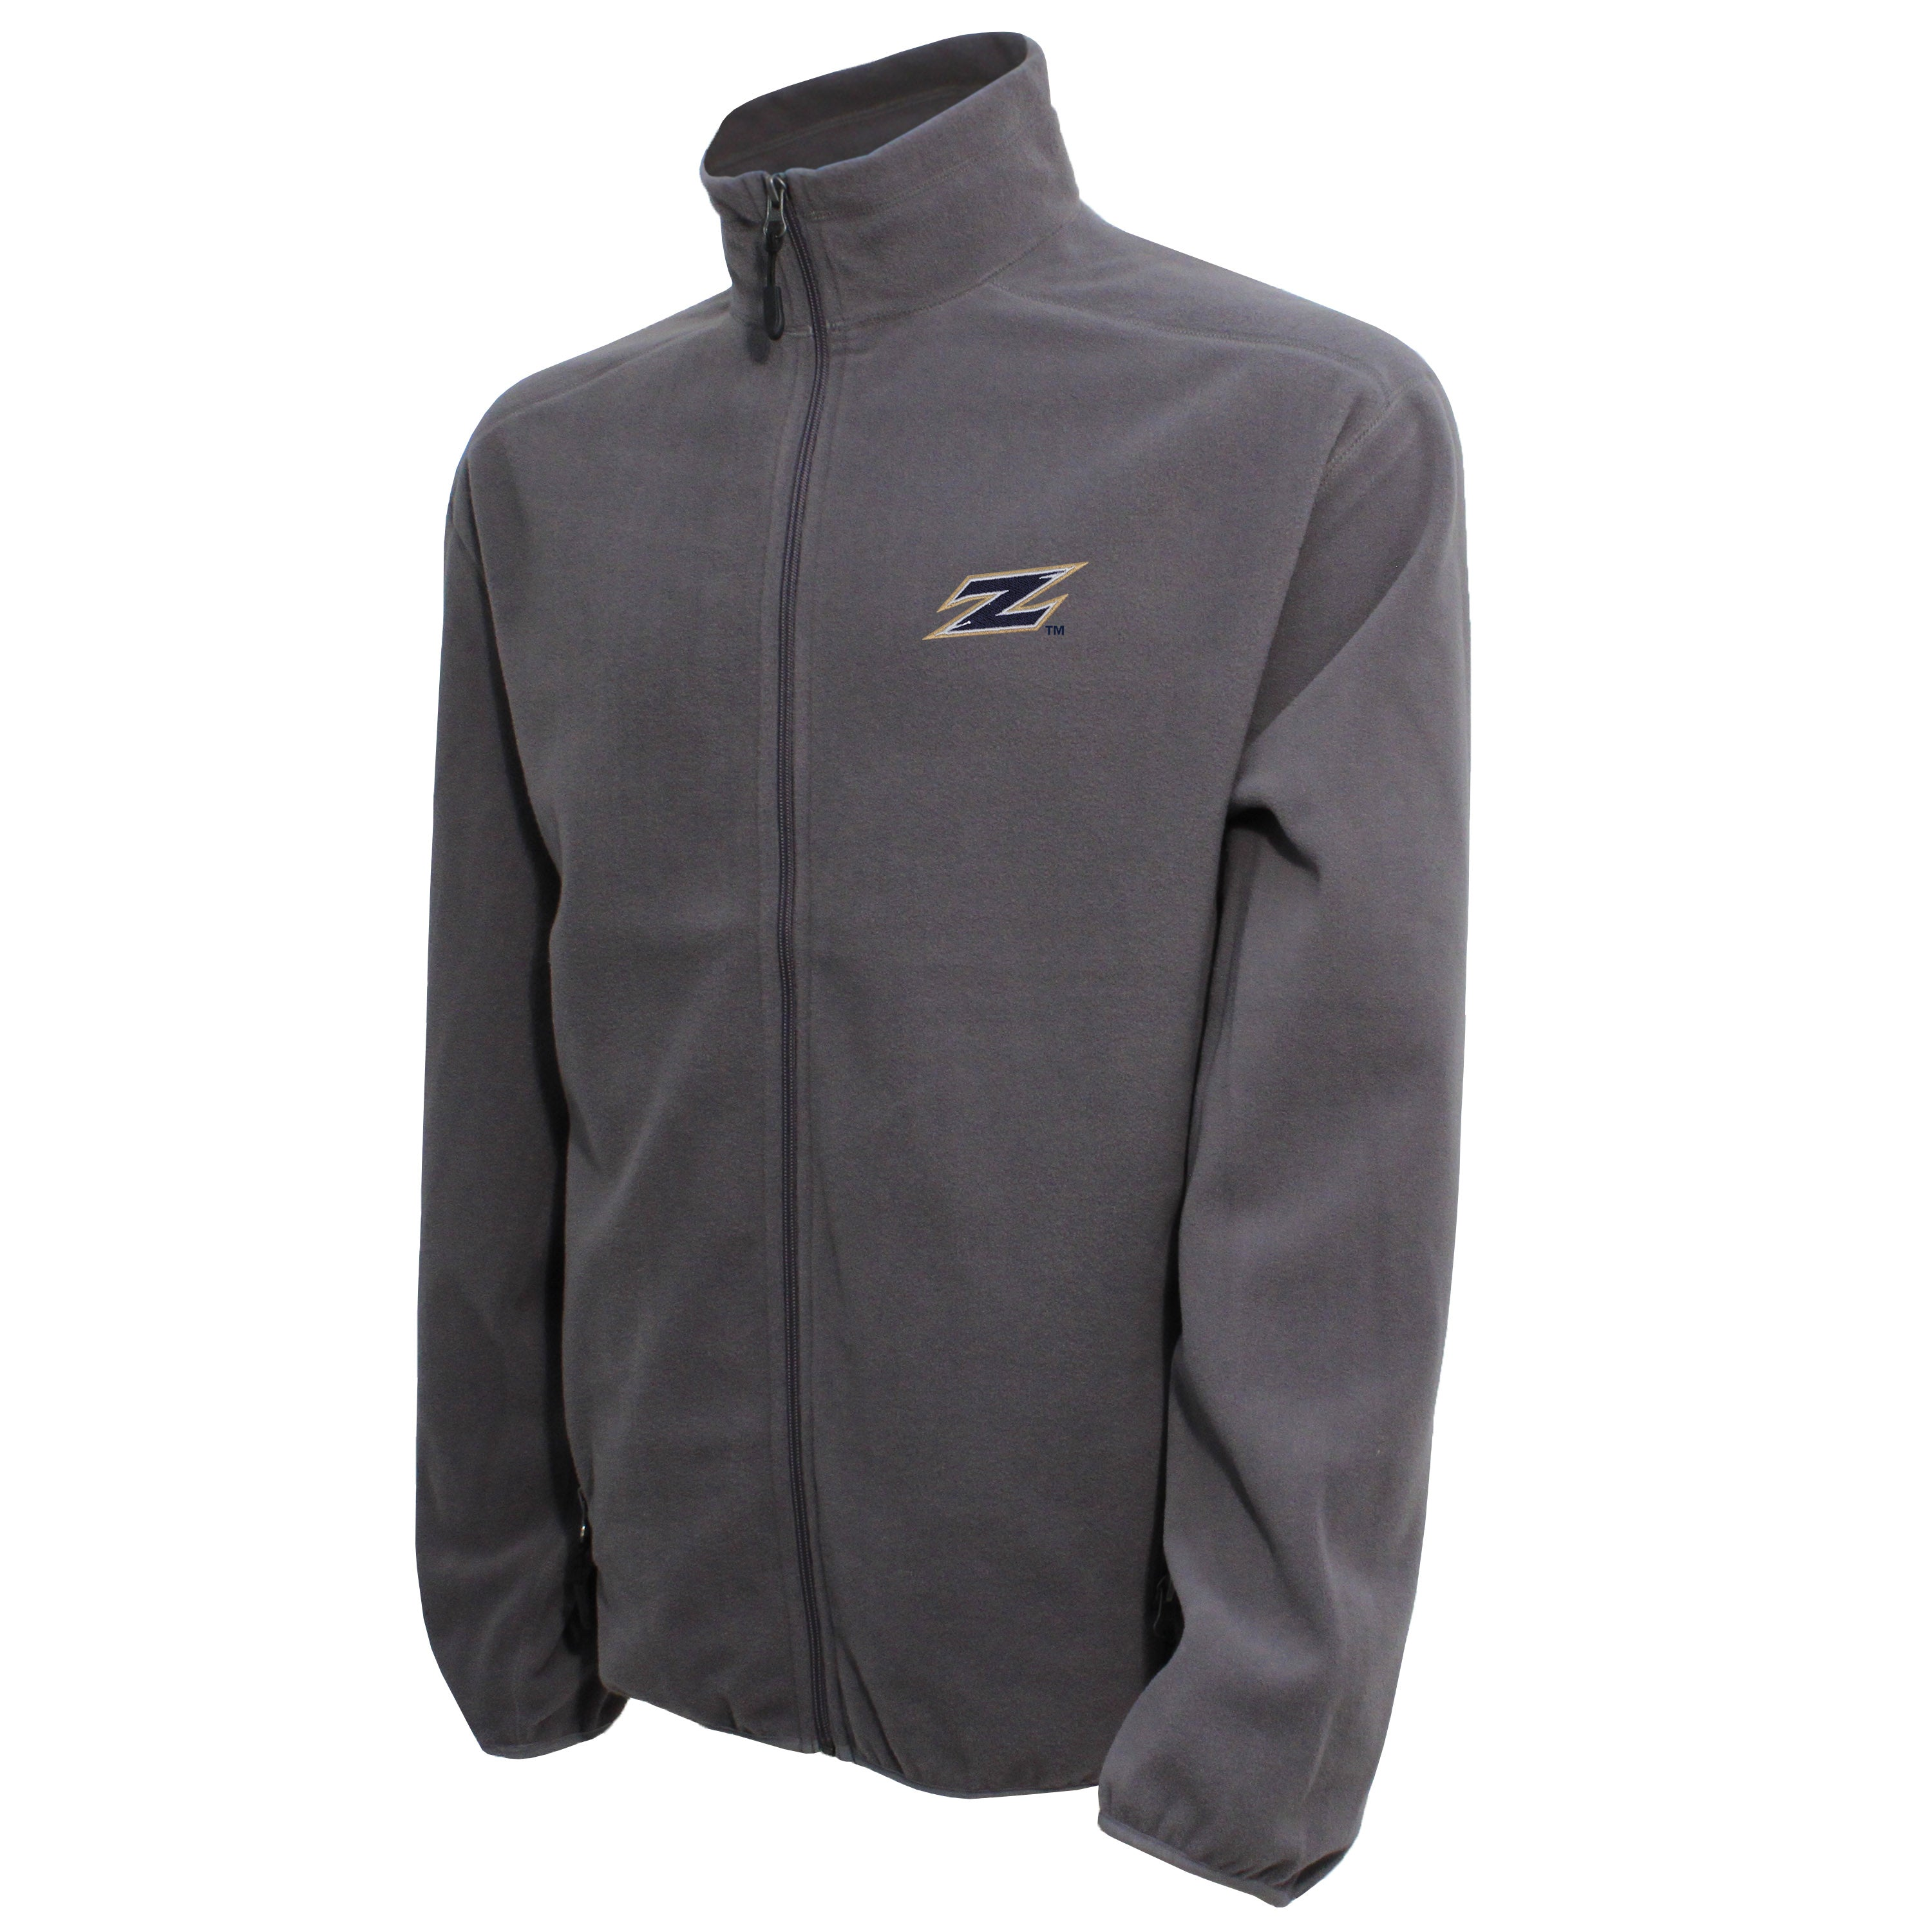 Vesi Akron Men's Graphite Full Zip Jacket